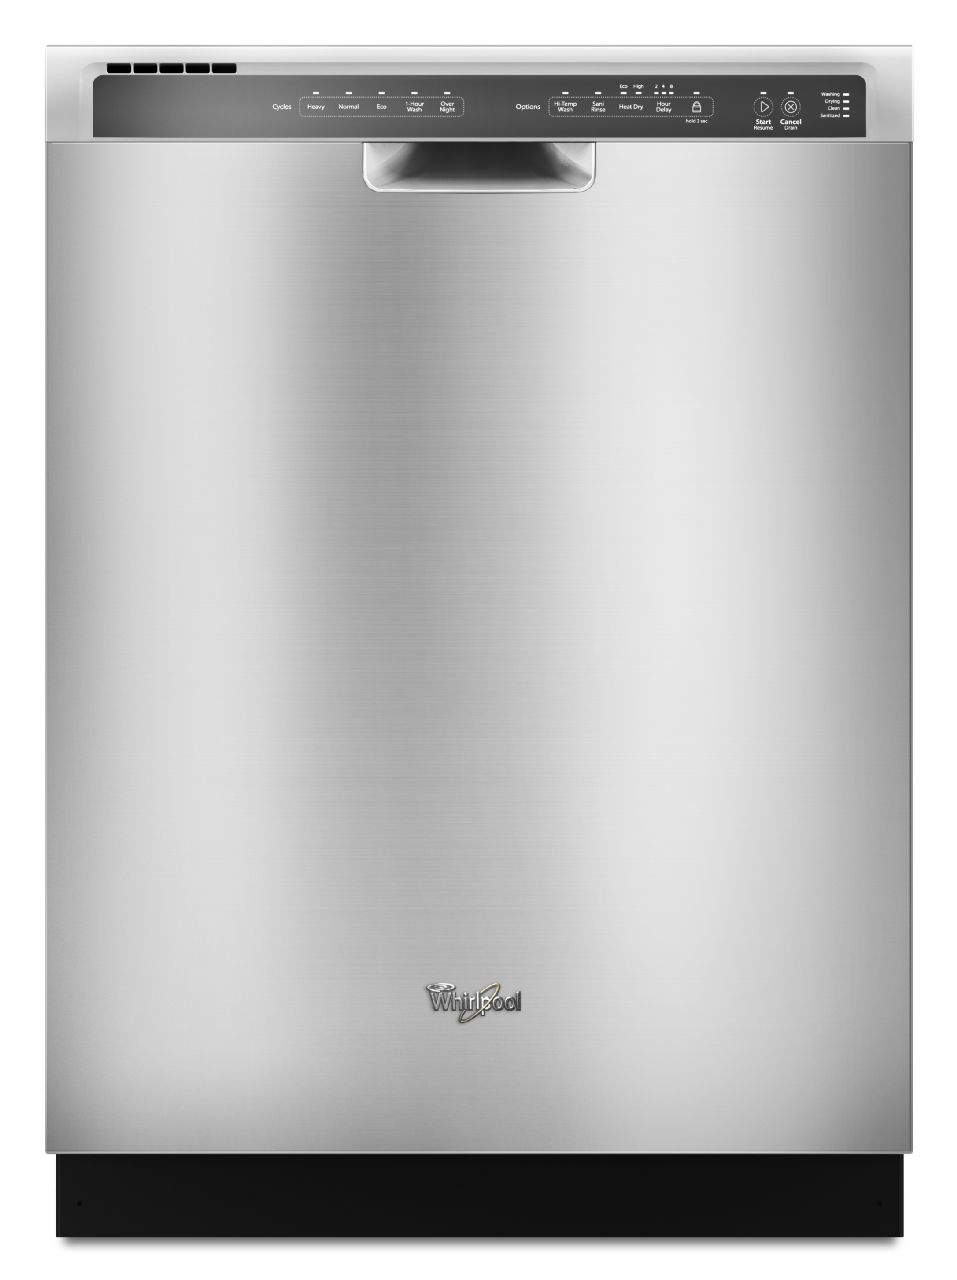 whirlpool gold series dishwasher user manual